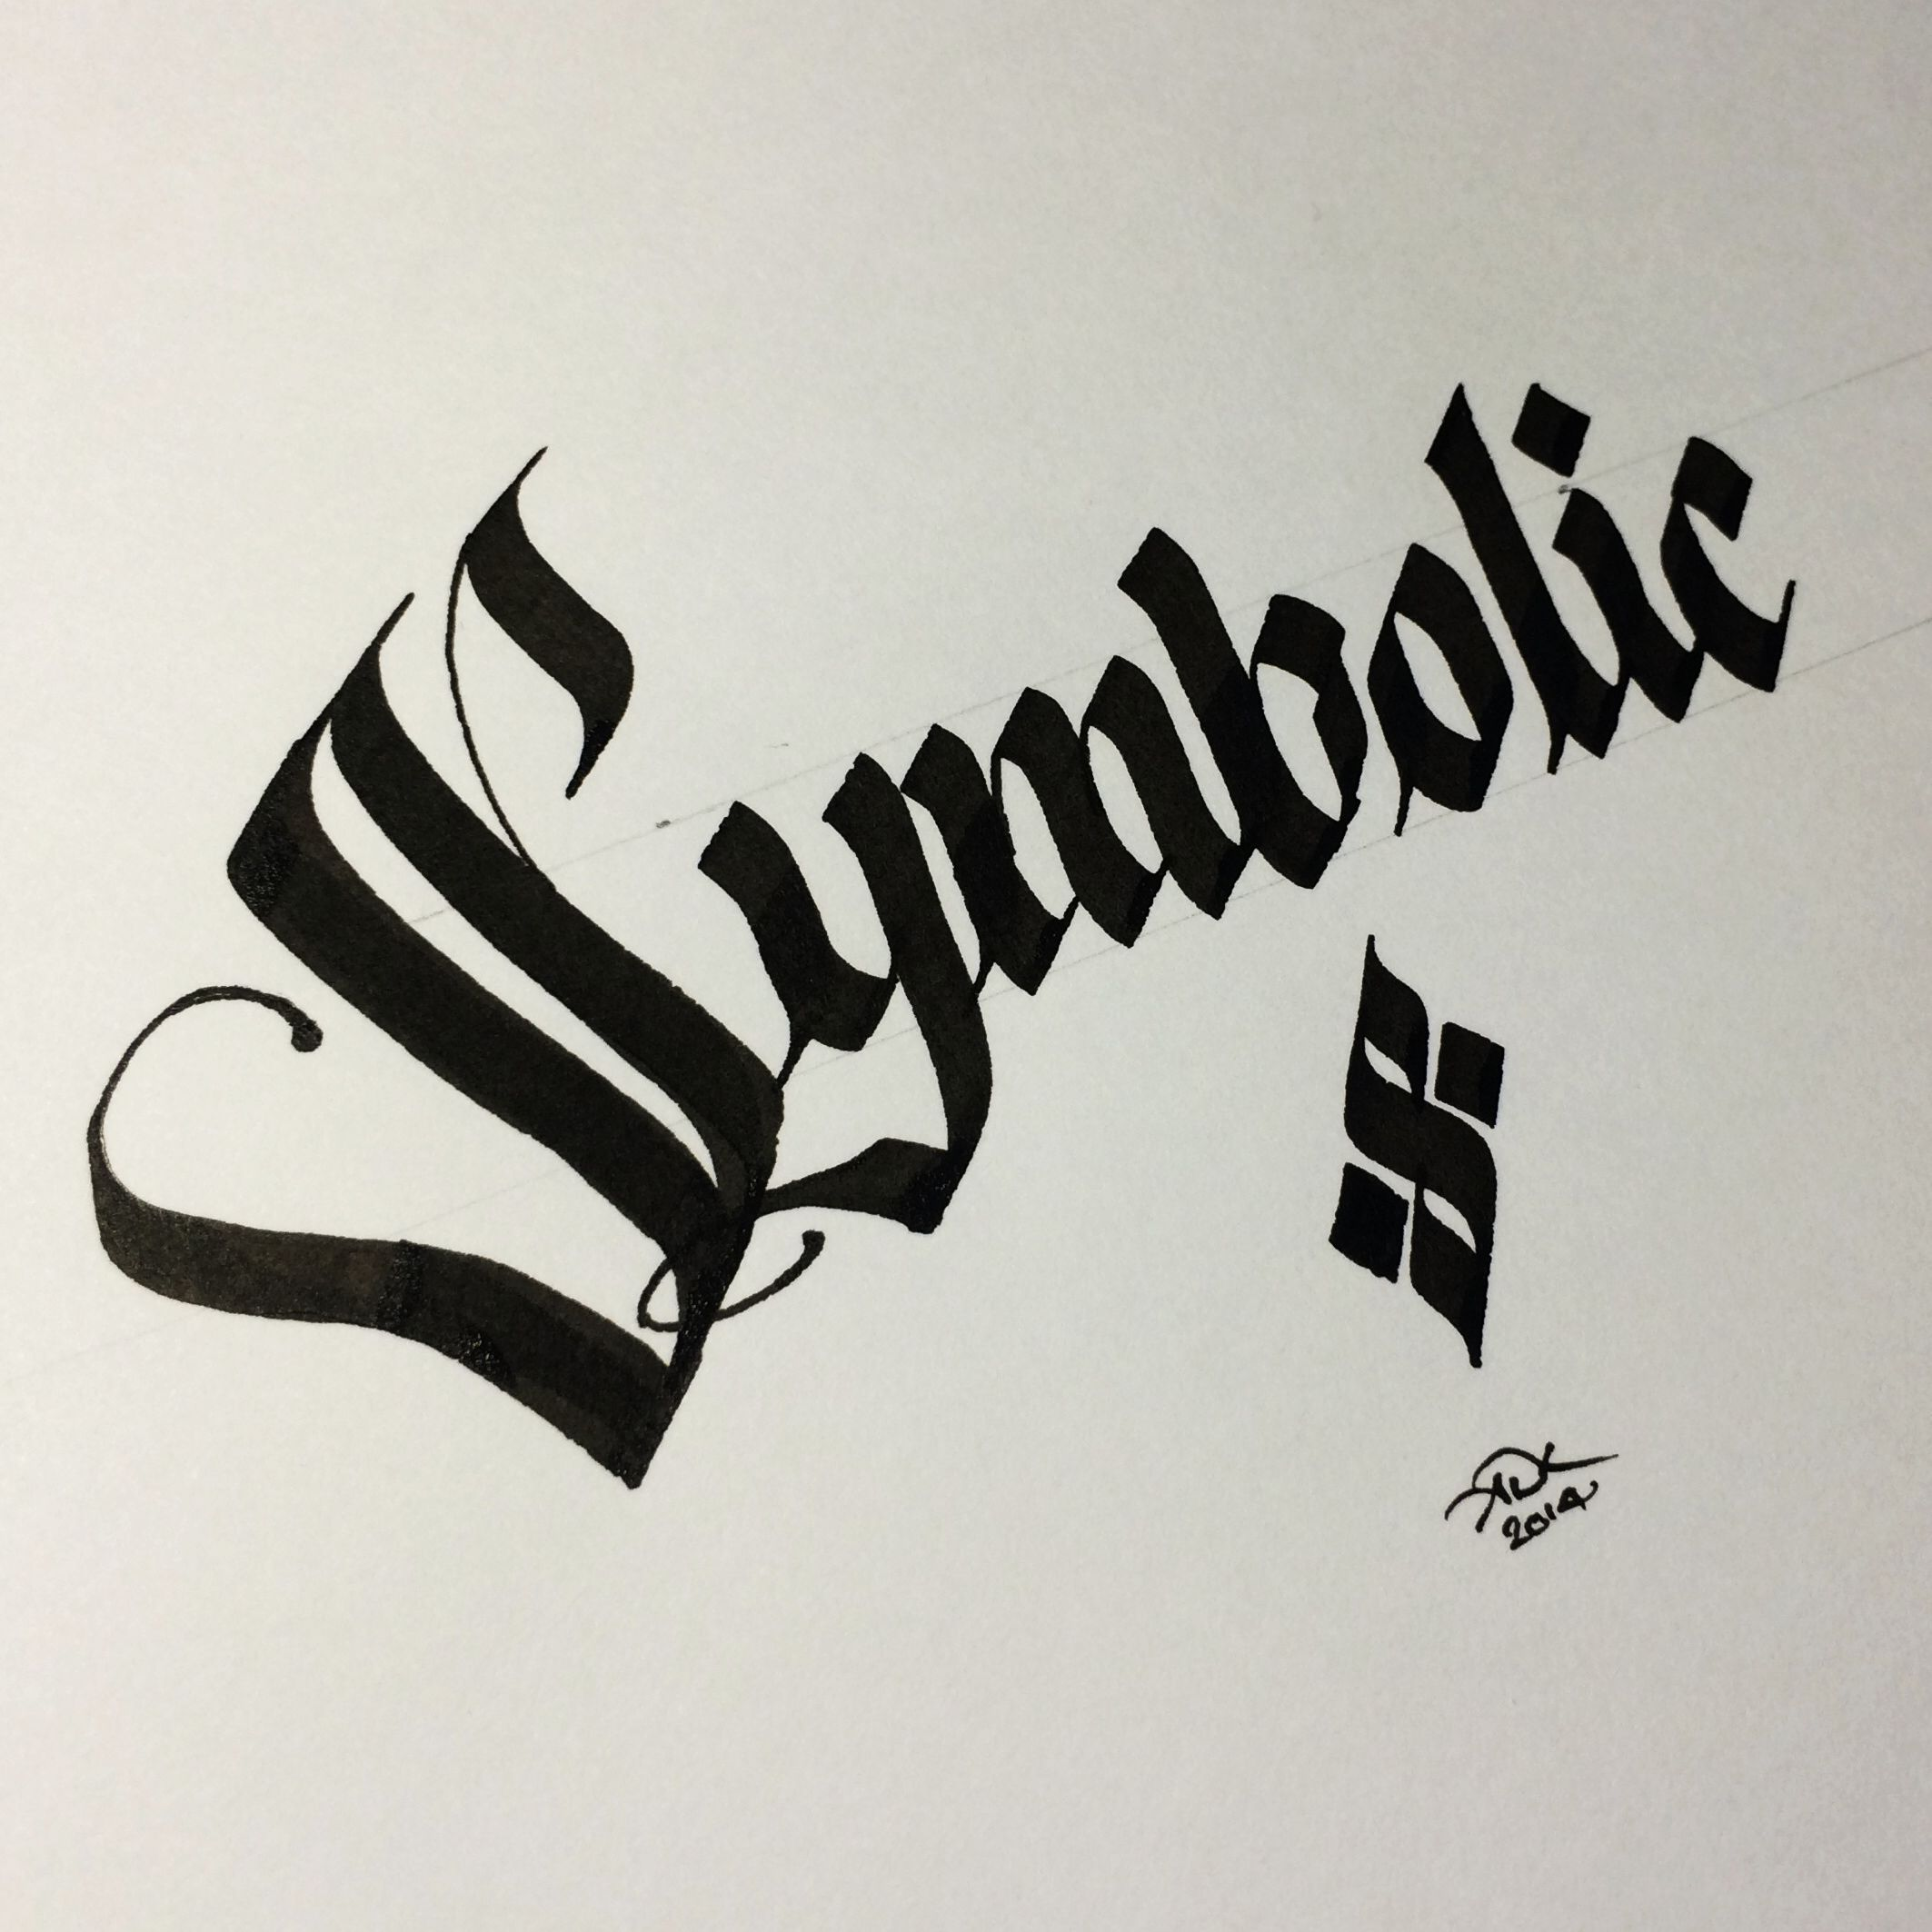 By Andrew Kelly Gothic Calligraphy Blackletter